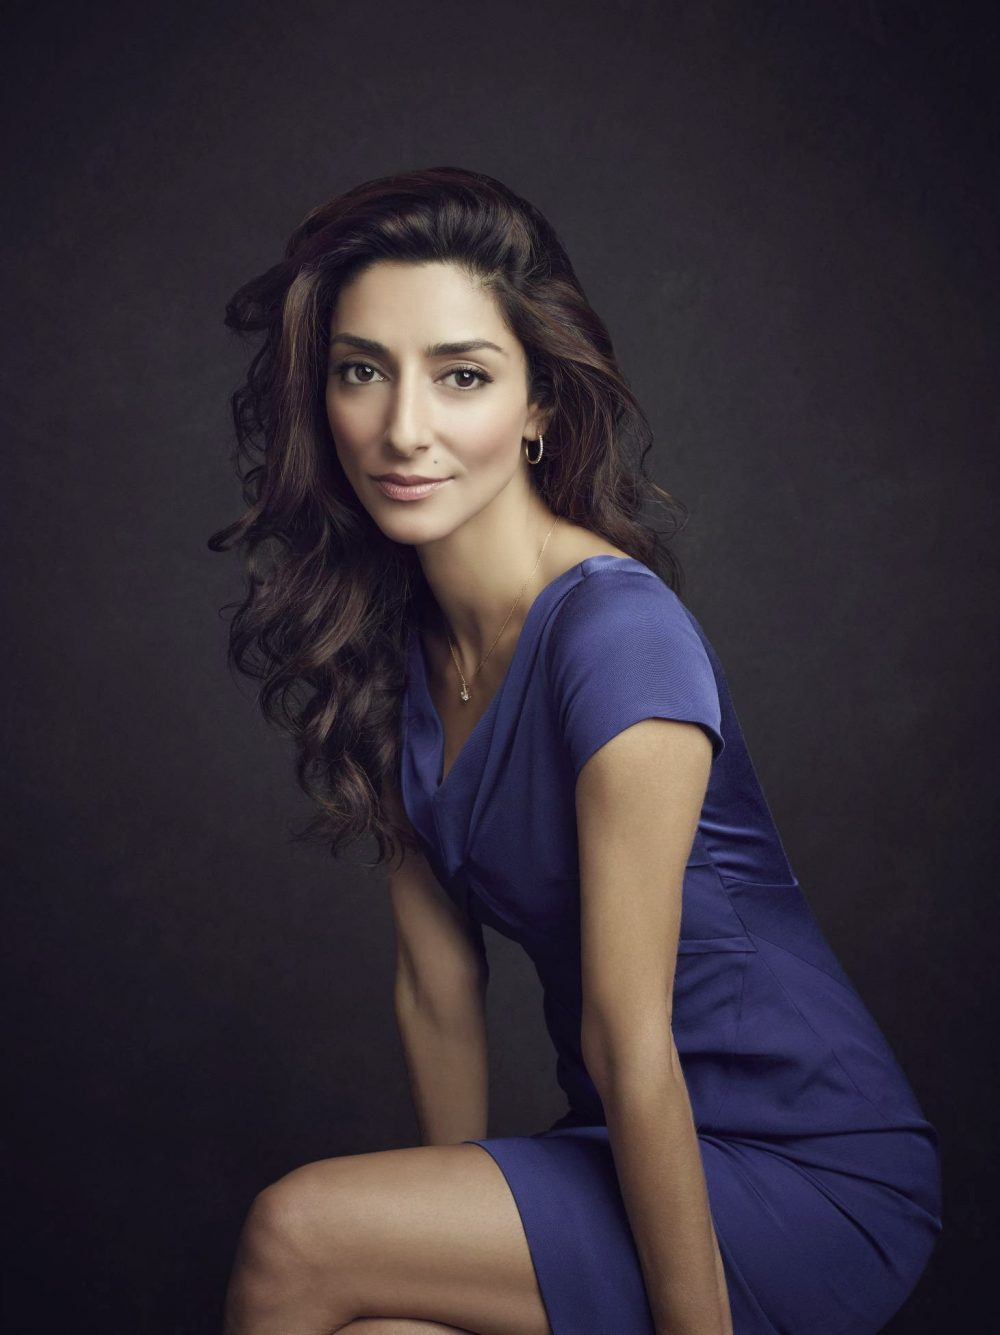 Actress Necar Zadegan Reveals Her Workout, Diet and Beauty ...